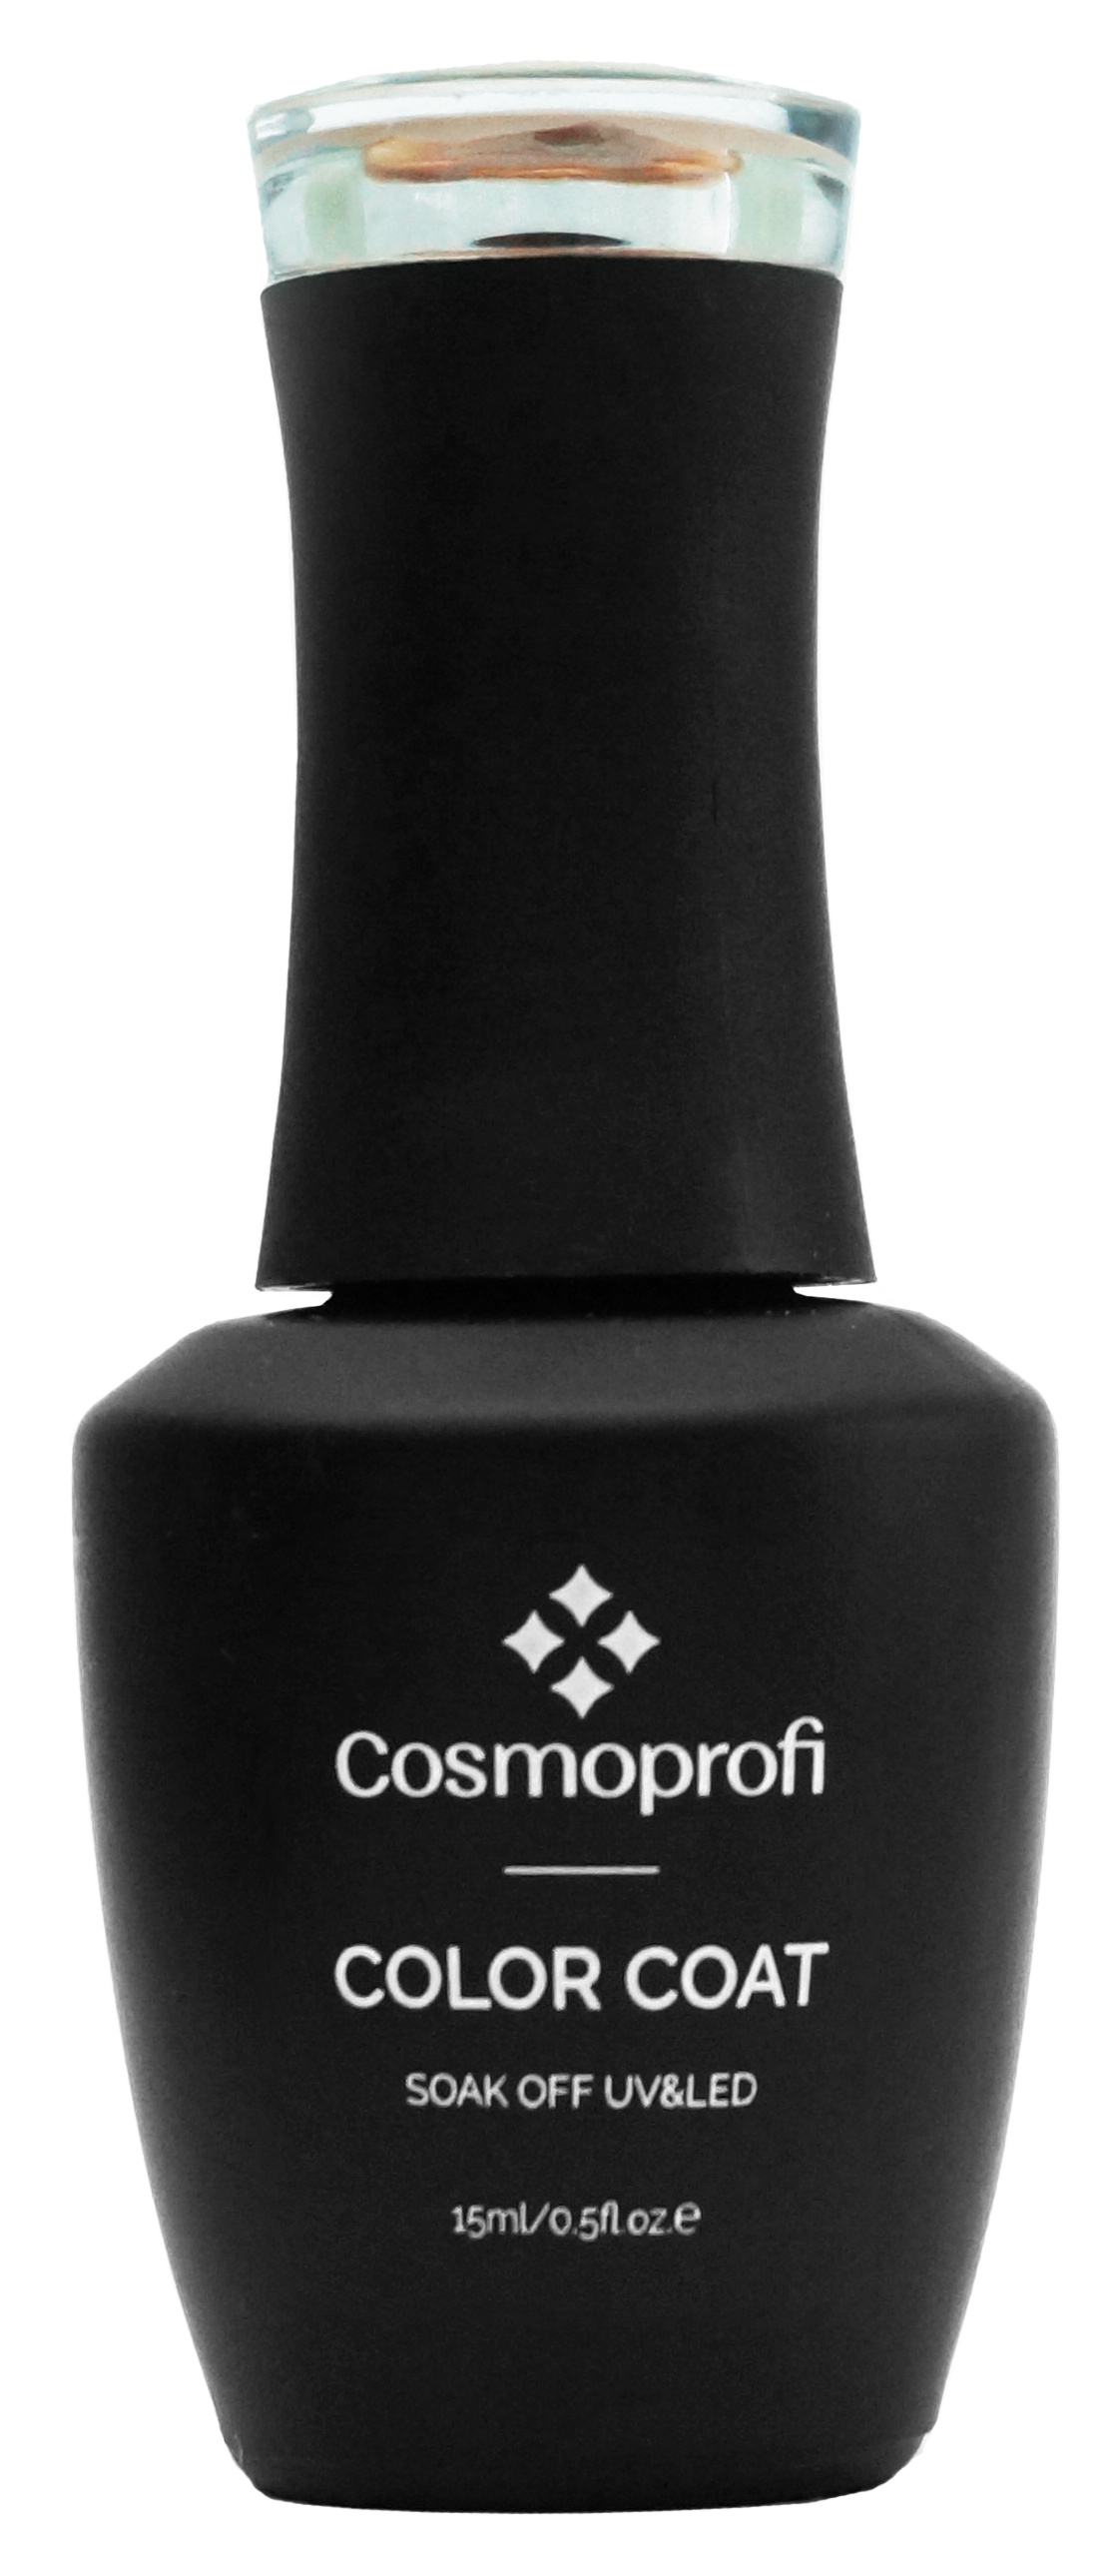 Гель-лак Cosmoprofi, Color coat № 201, 15 мл